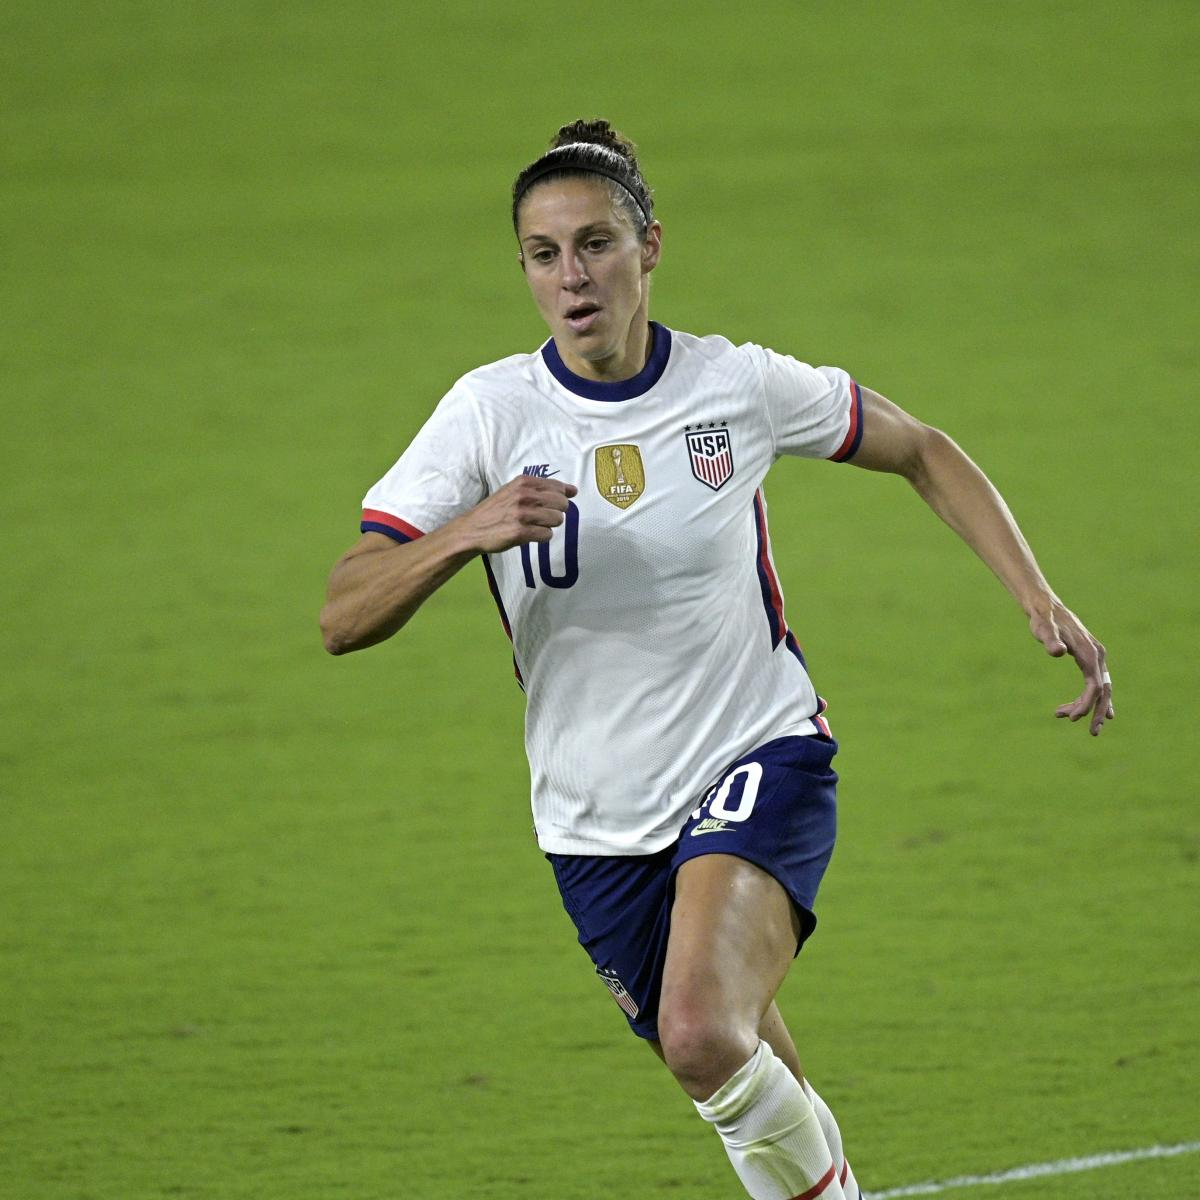 USWNT vs. Sweden: 2021 Friendly Odds, Time, Live Stream and TV Schedule